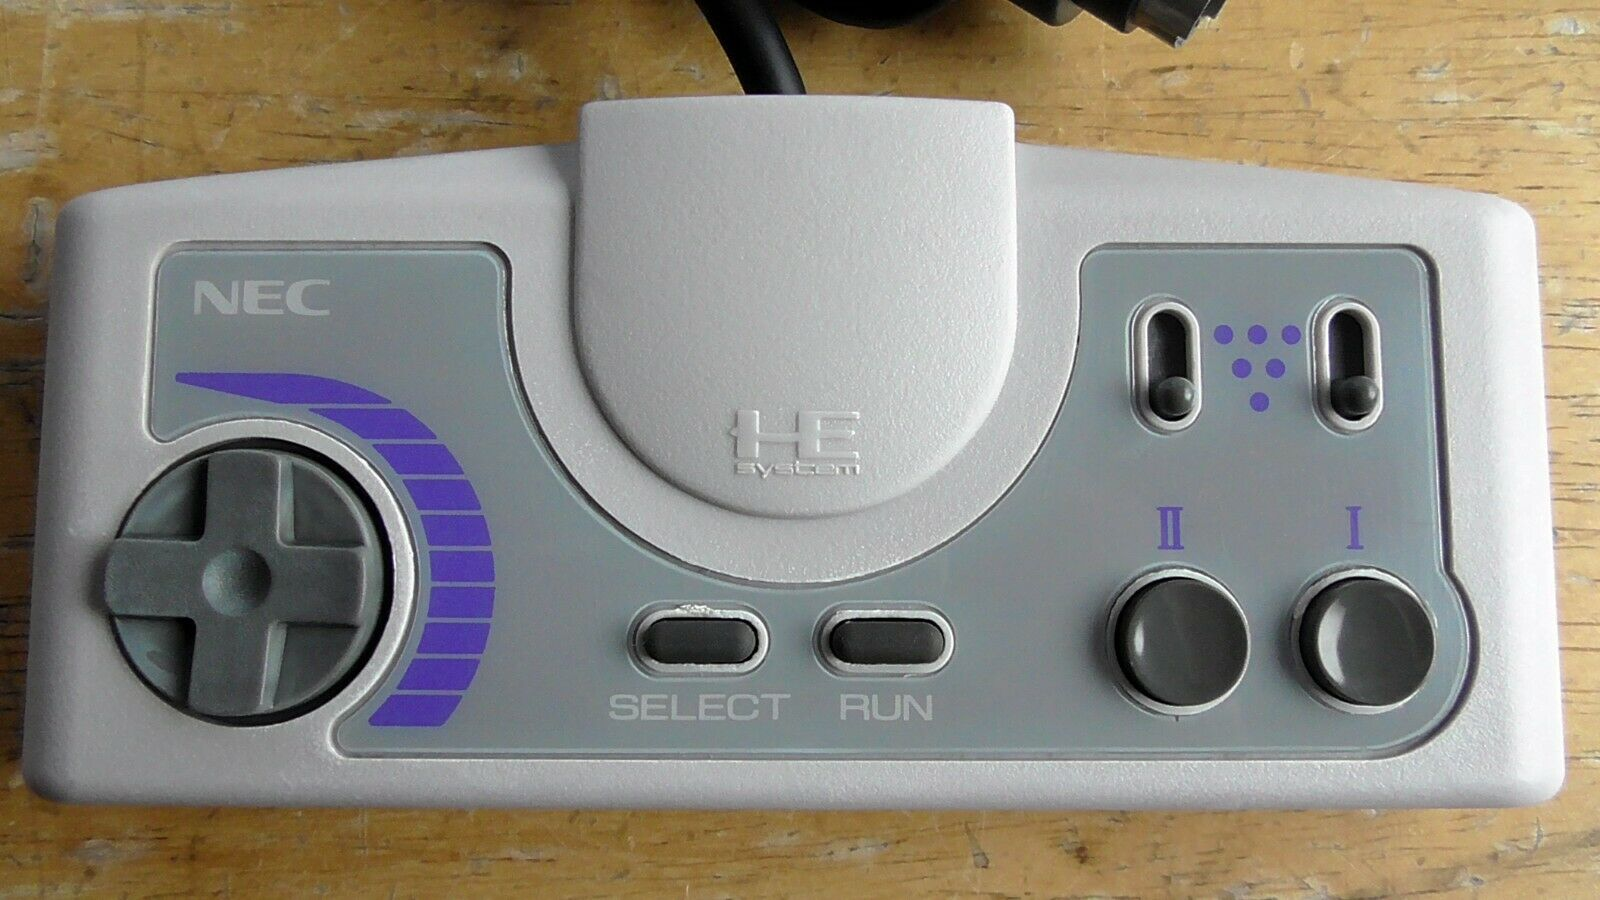 PC Engine controller turbo pad model DUO-R restored white